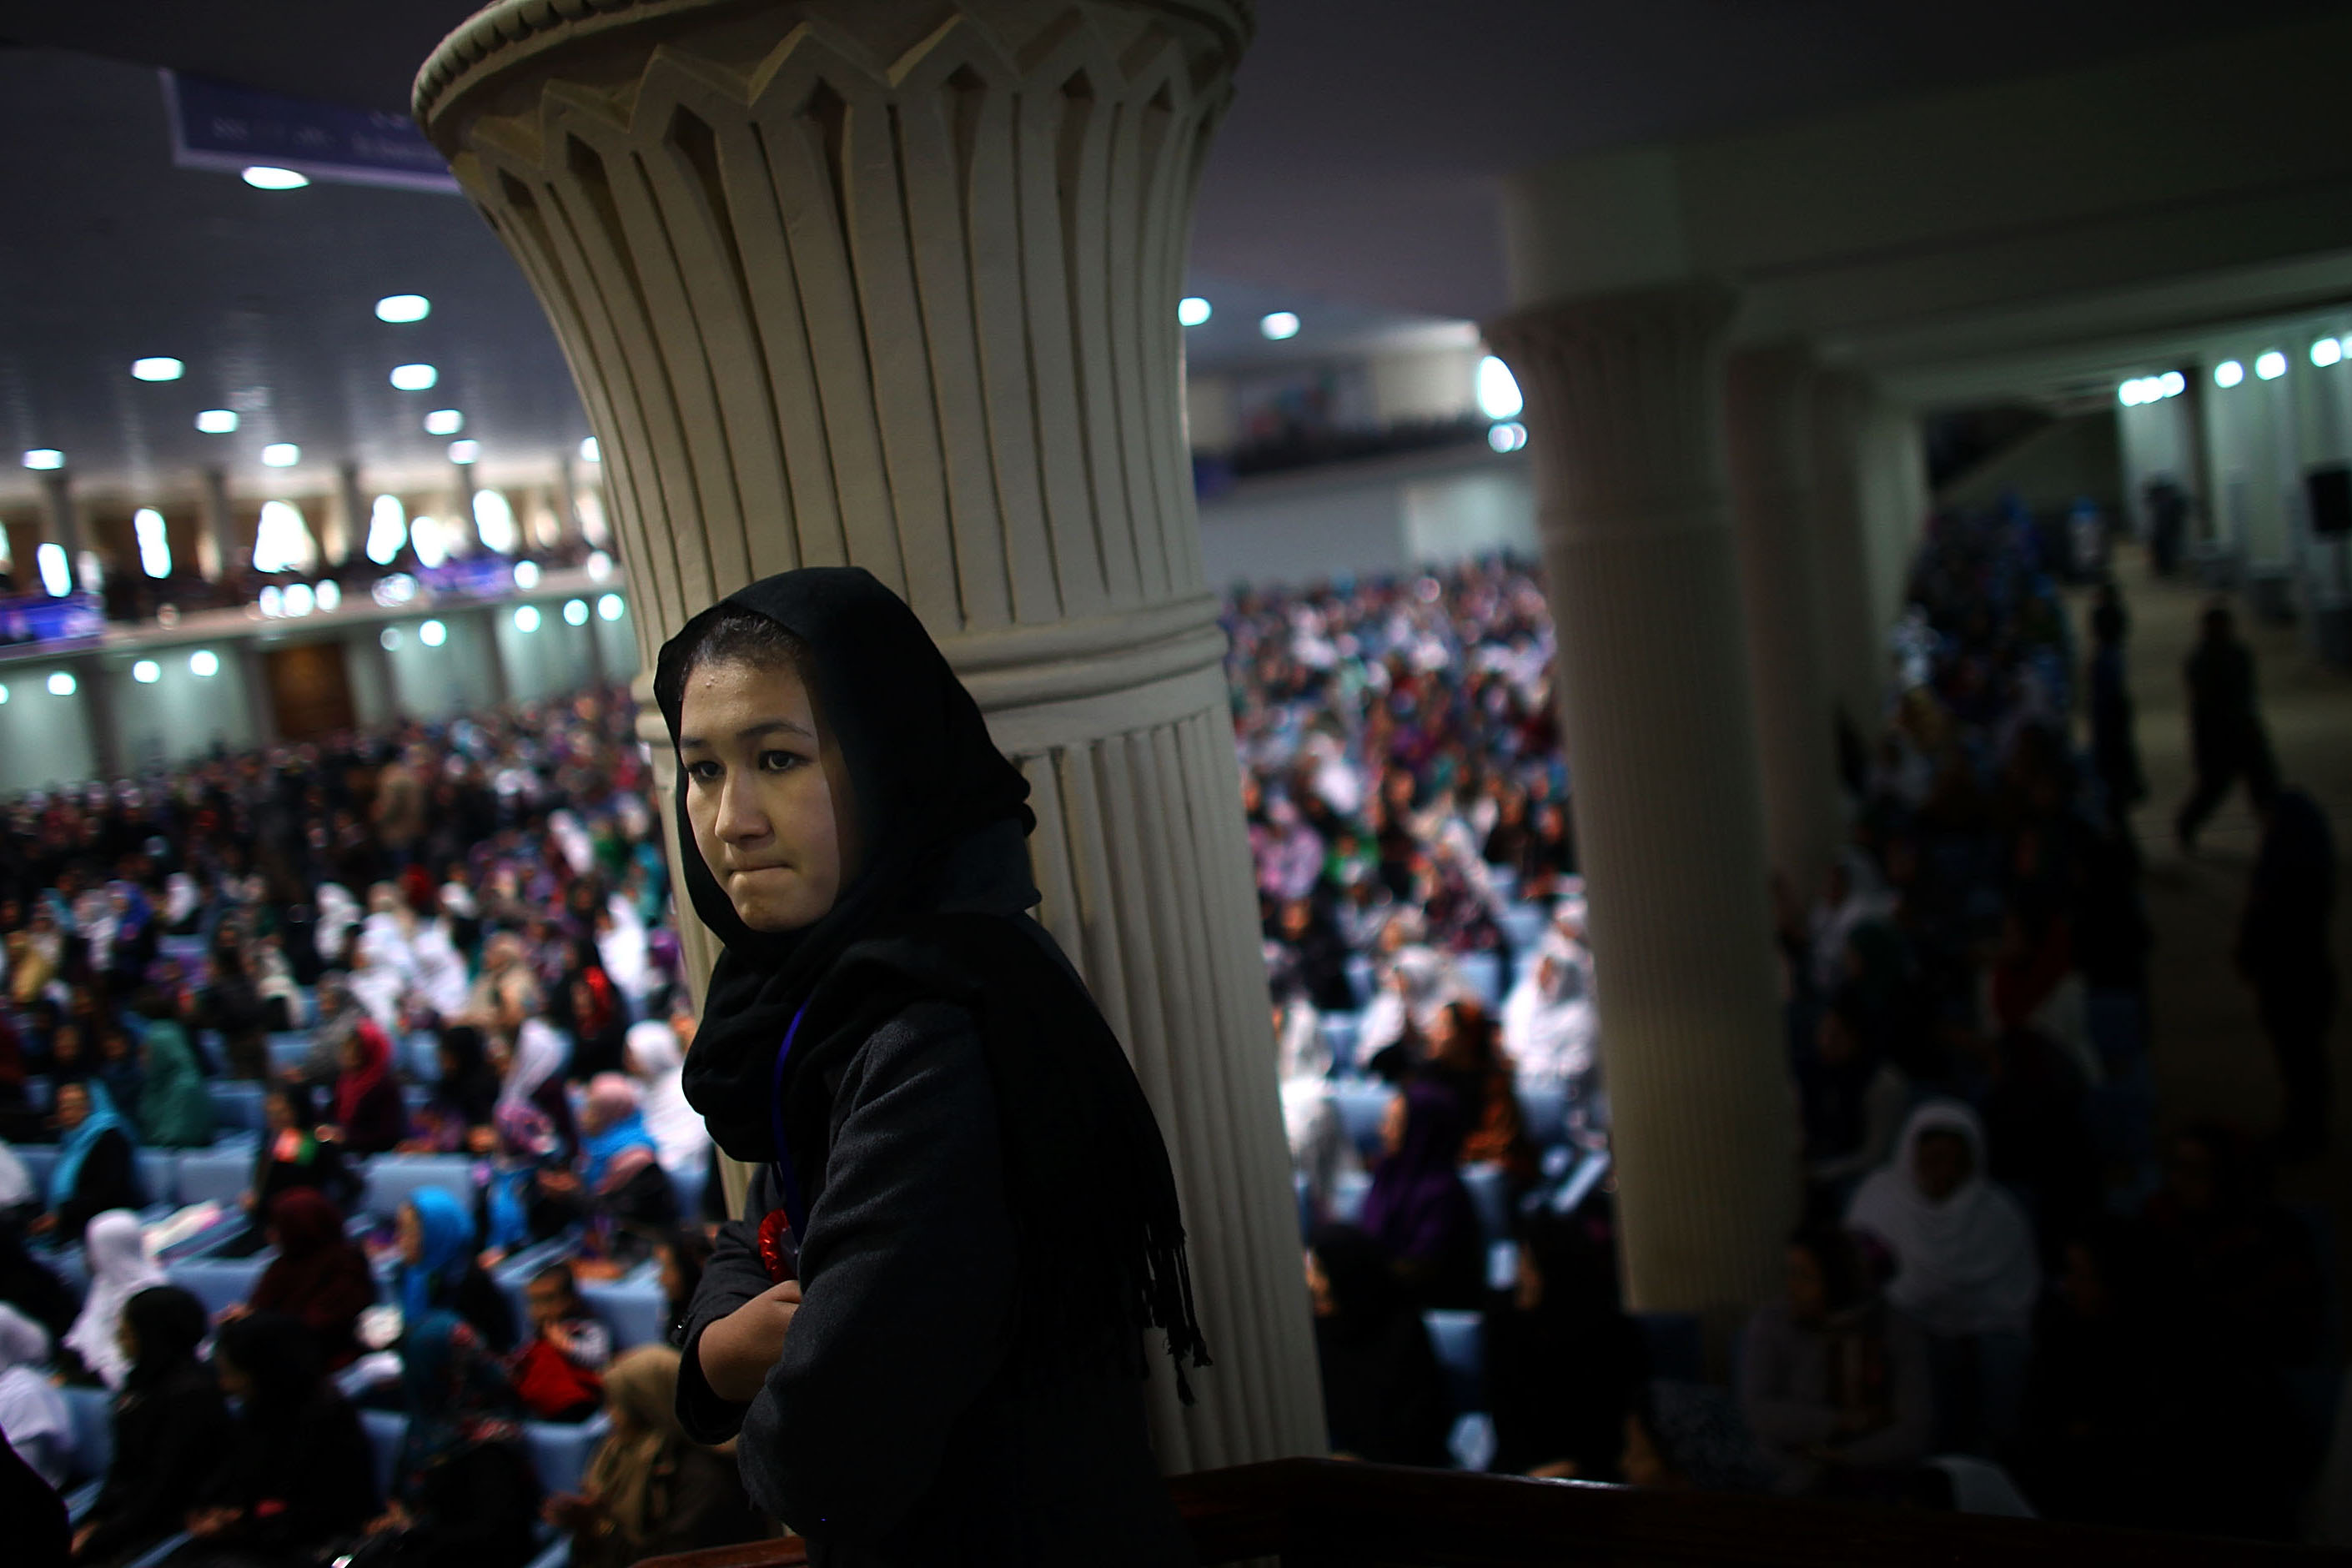 A woman stands on a stairway to get a better view of Ghani during the rally.